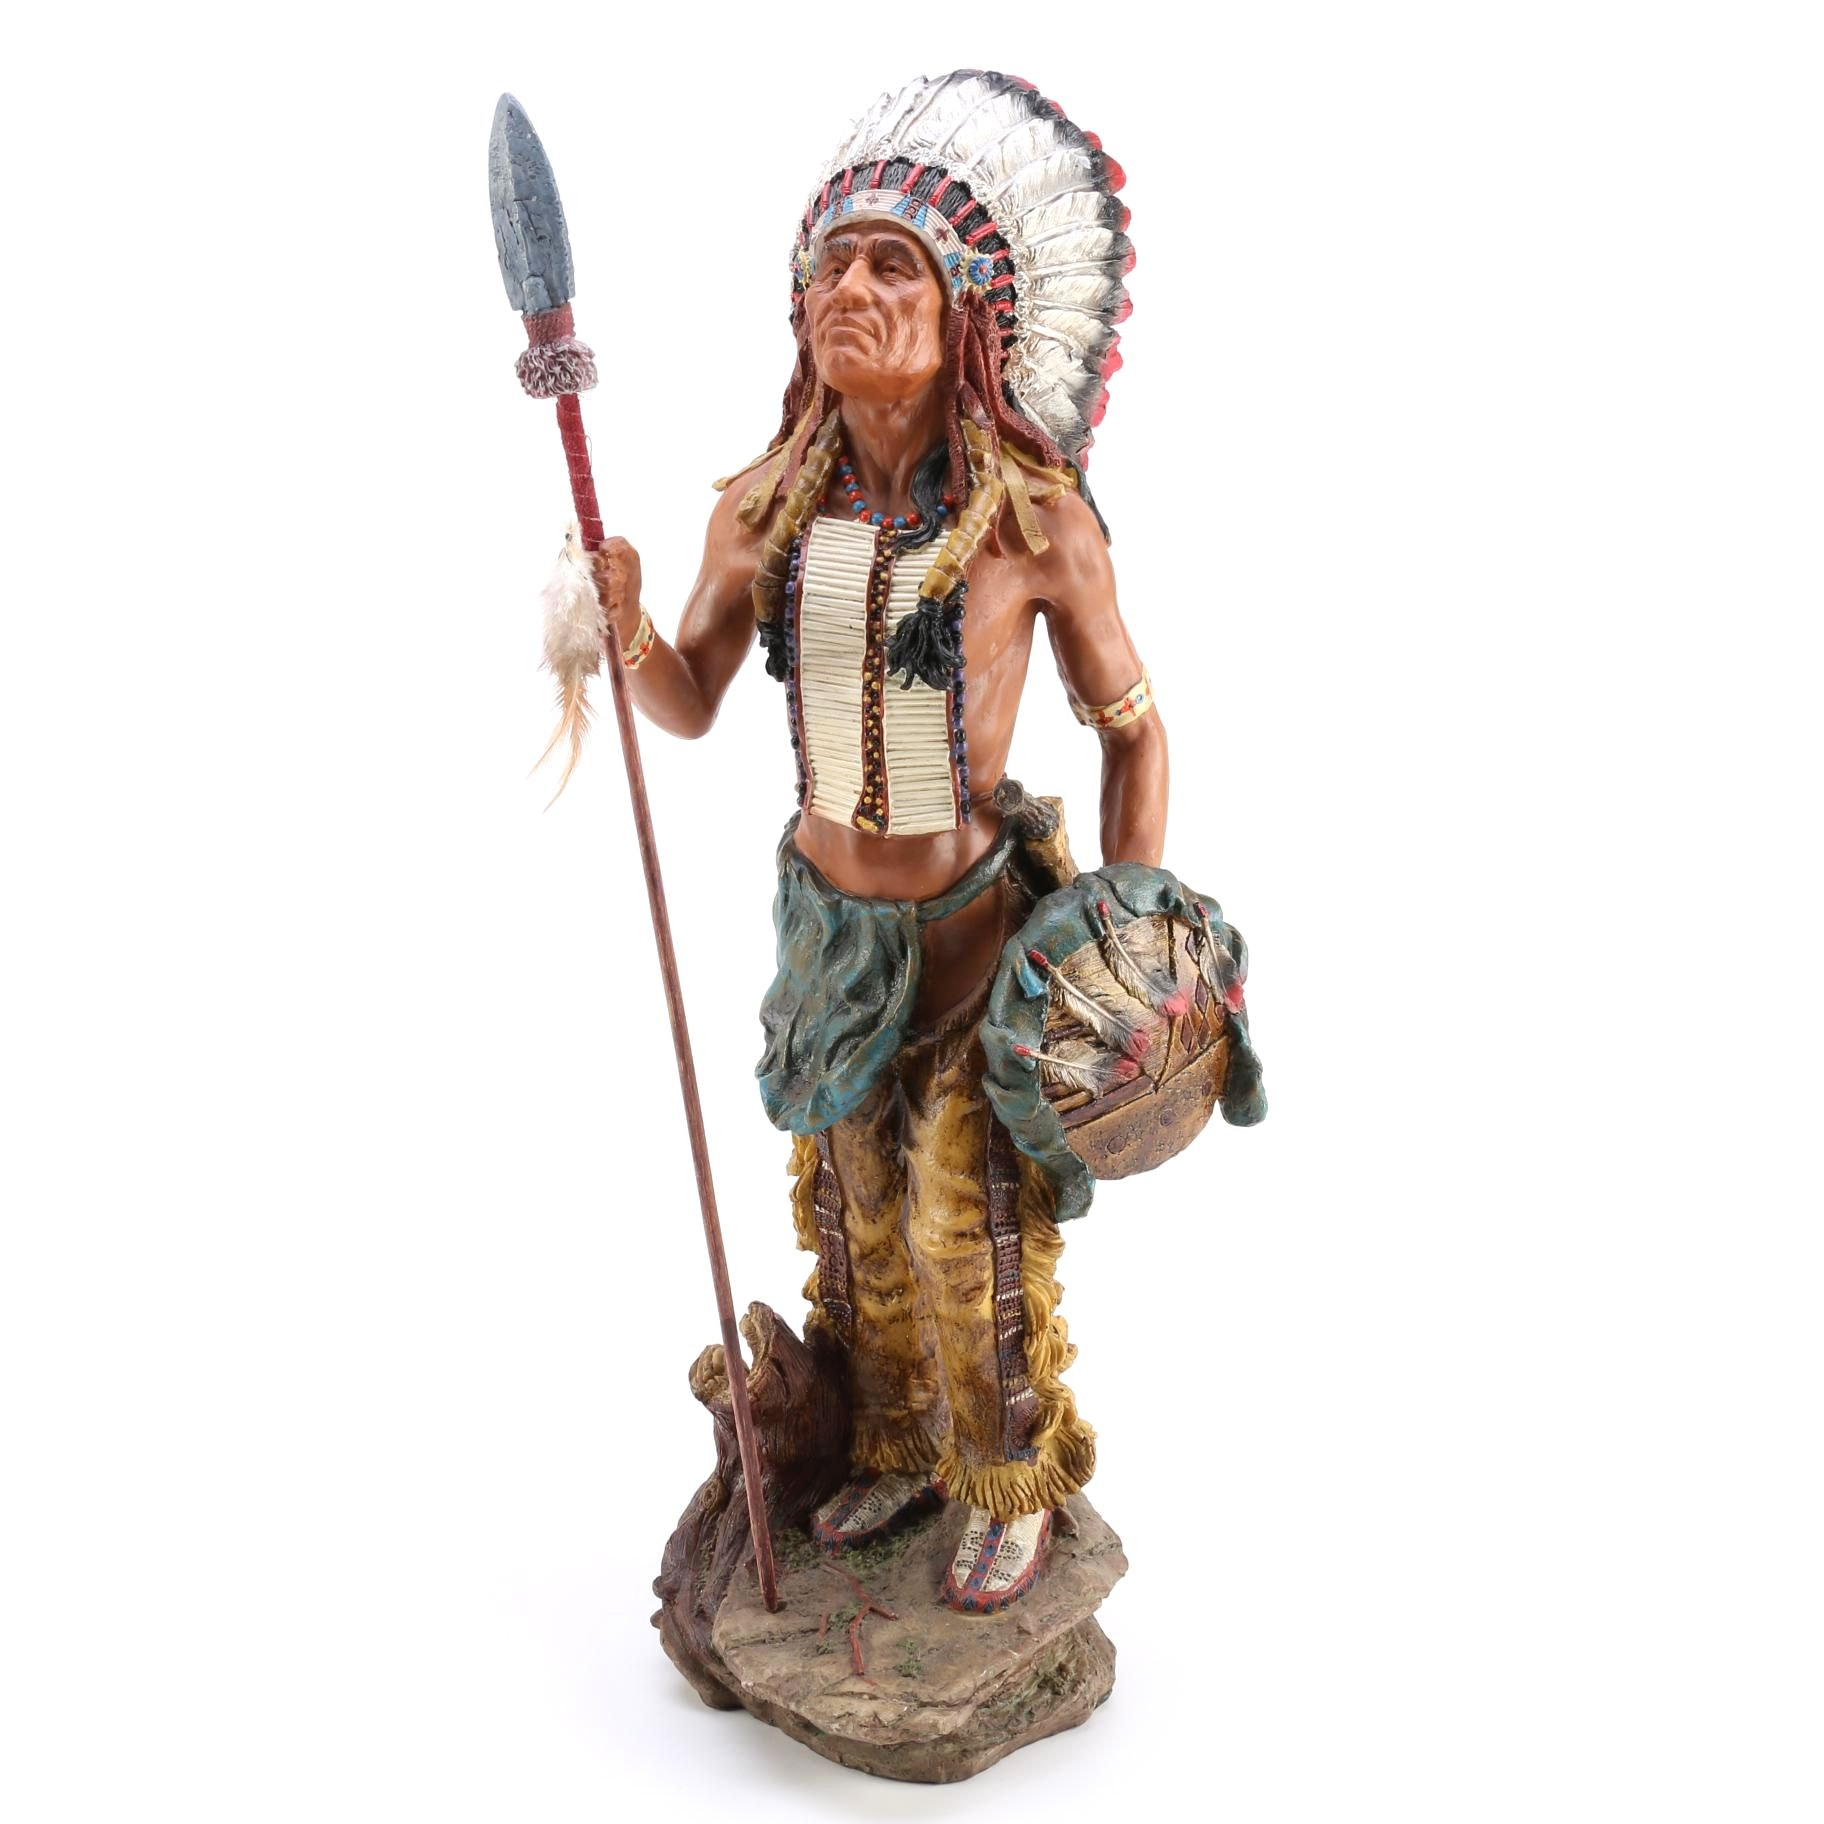 Resin Statue of Native American Style Figure